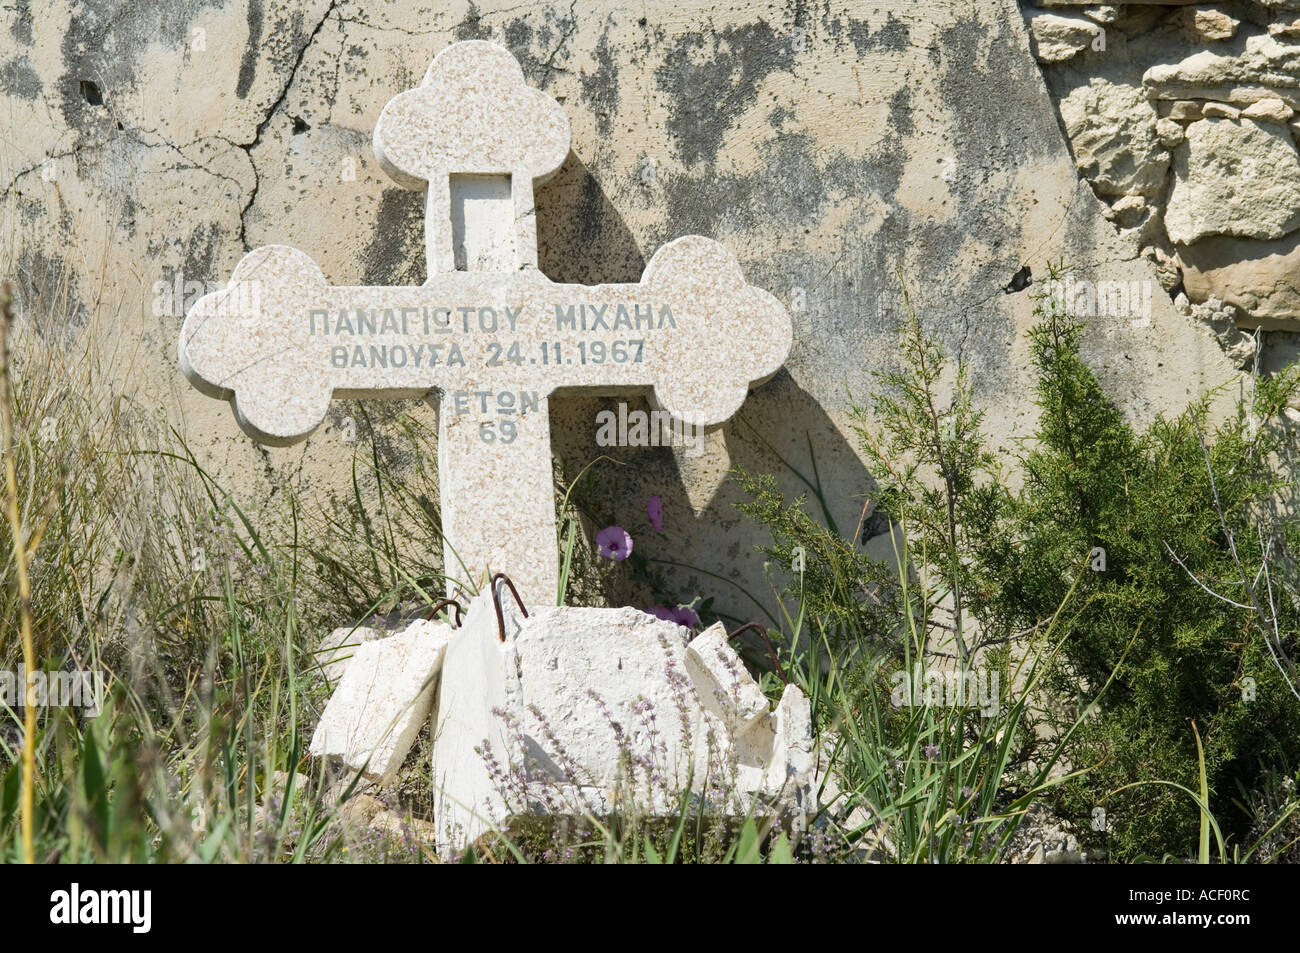 Desecrated Greek cemetery, Northern Cyprus, Europe - Stock Image